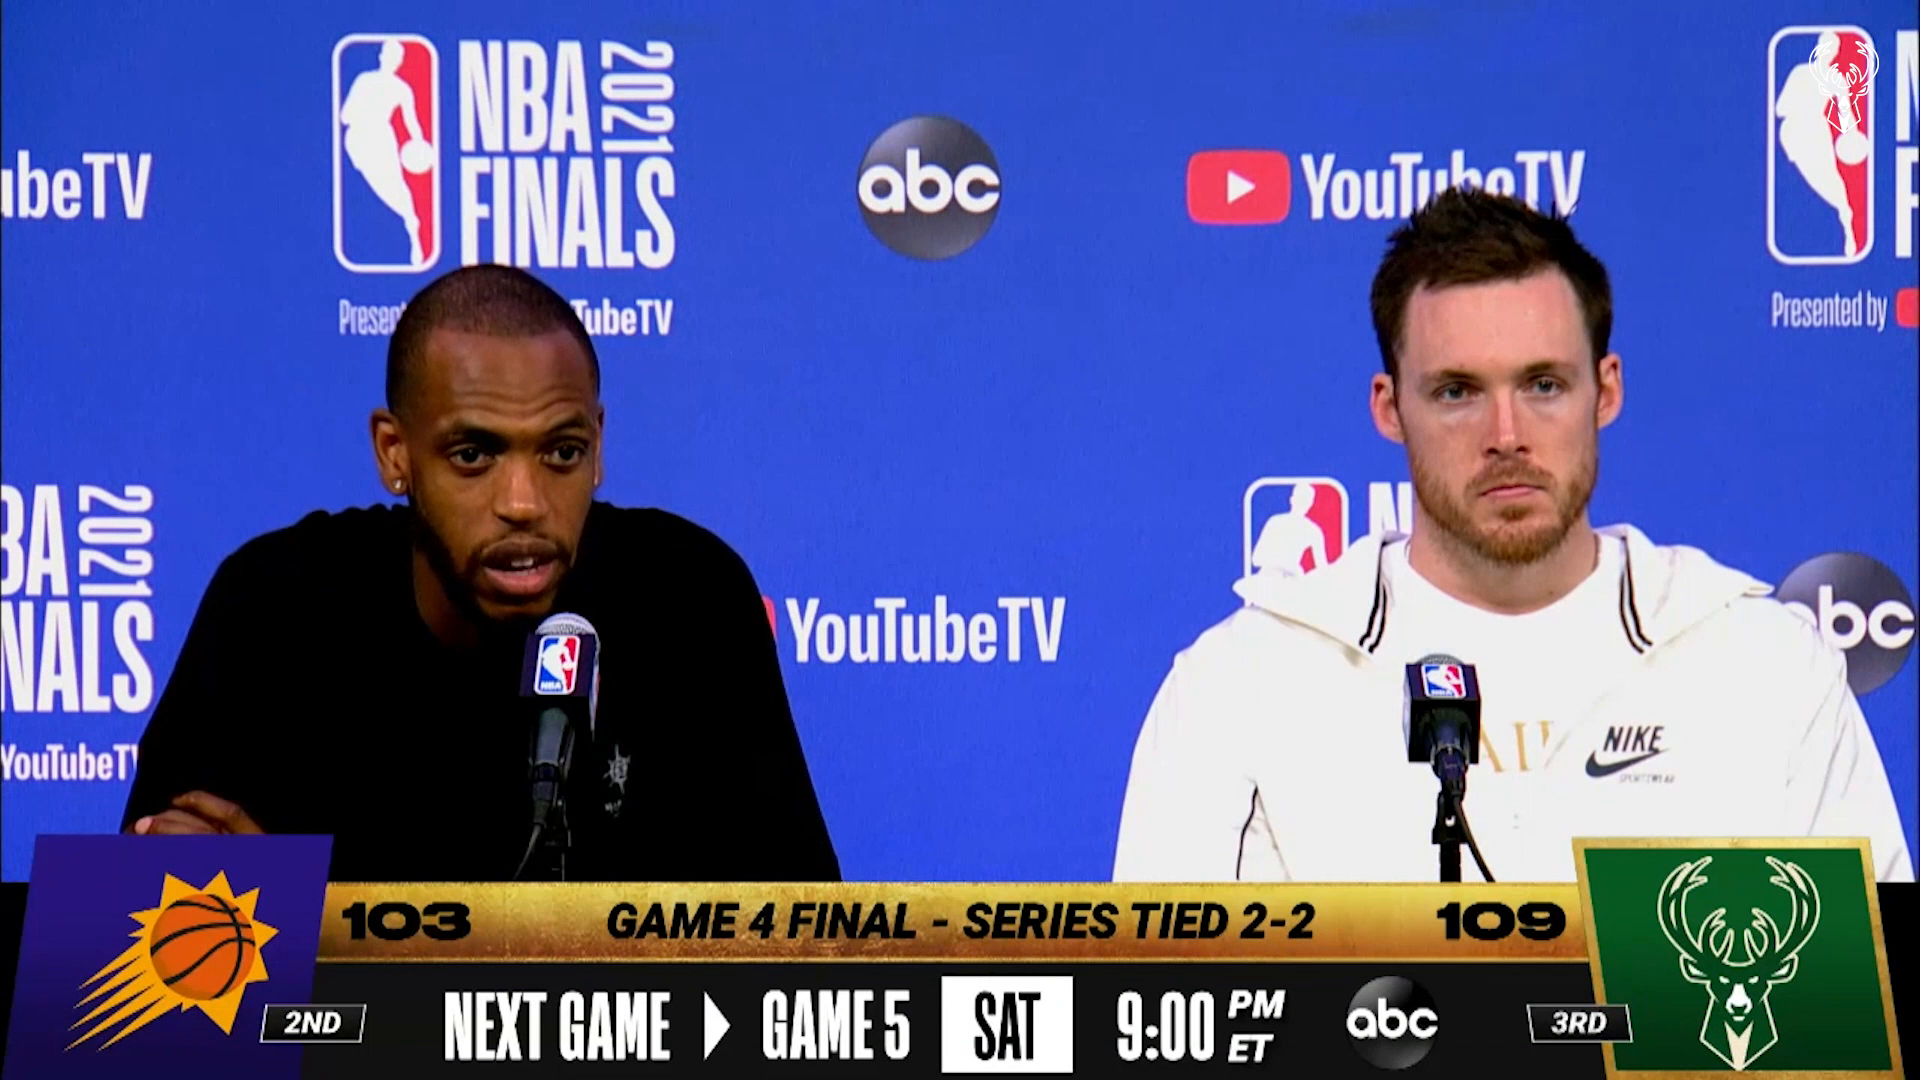 Khris Middleton and Pat Connaughton Game 4 NBA Finals Media Availability | 7.14.21